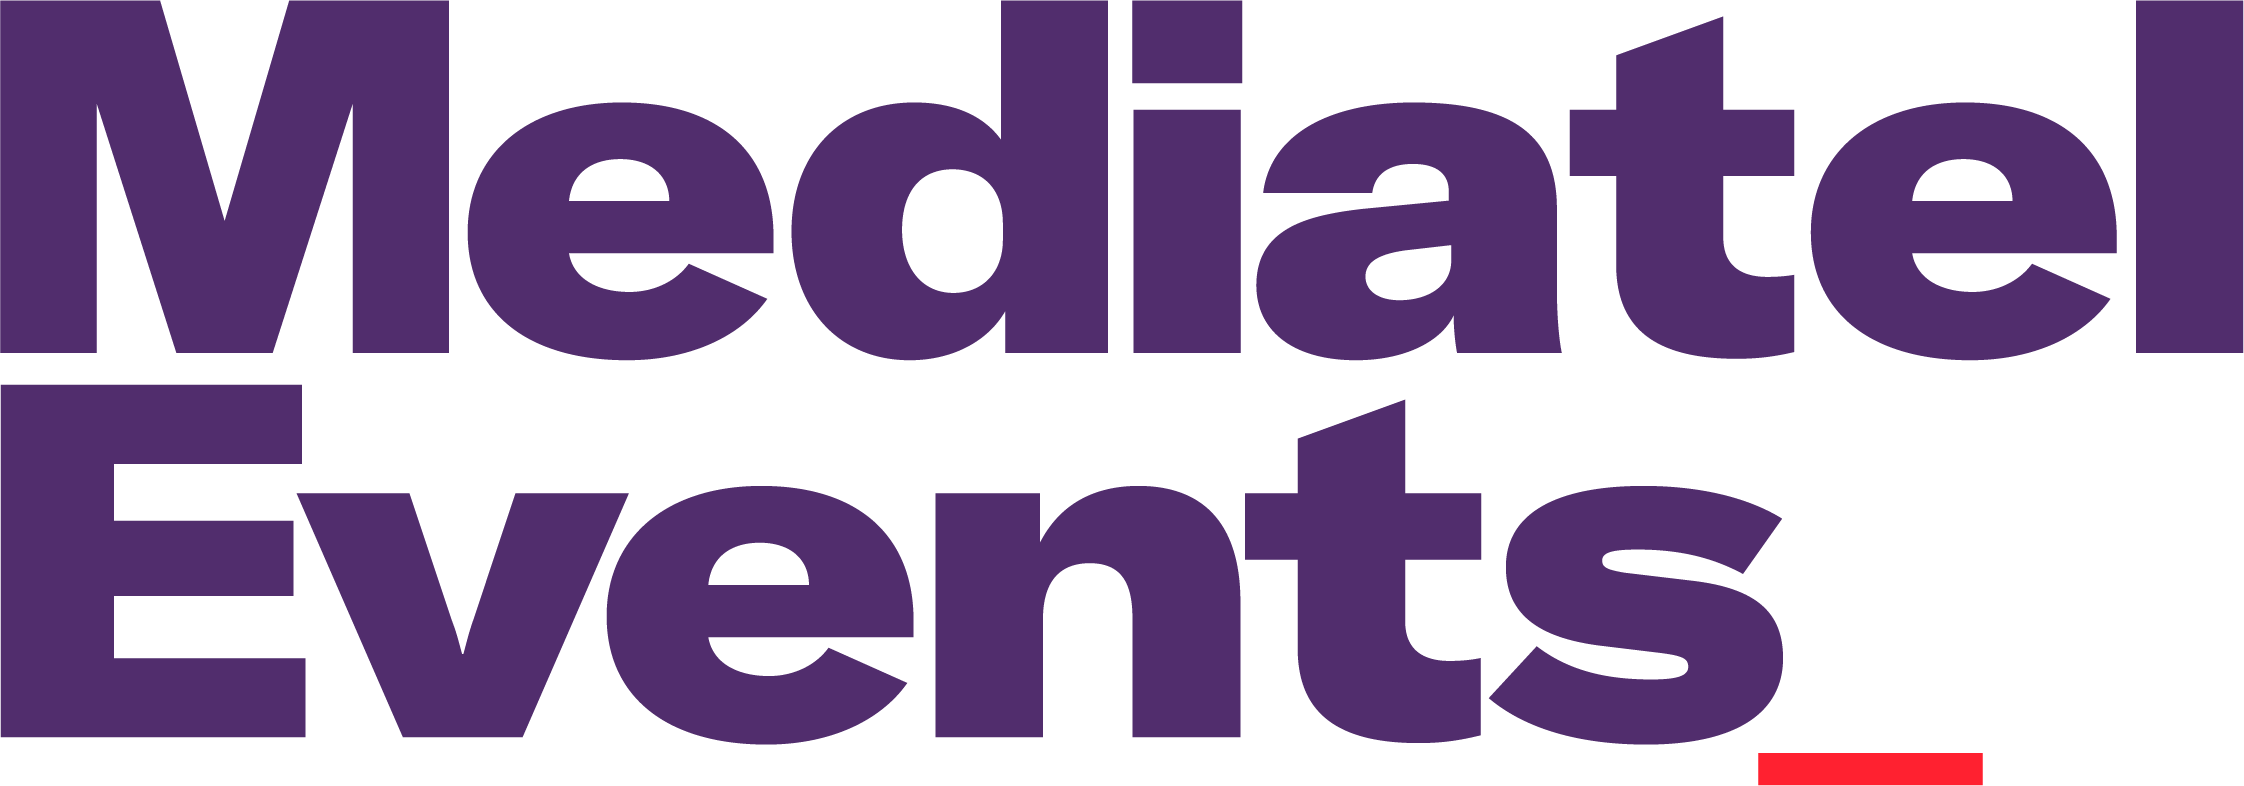 Mediatel-Events-Colour